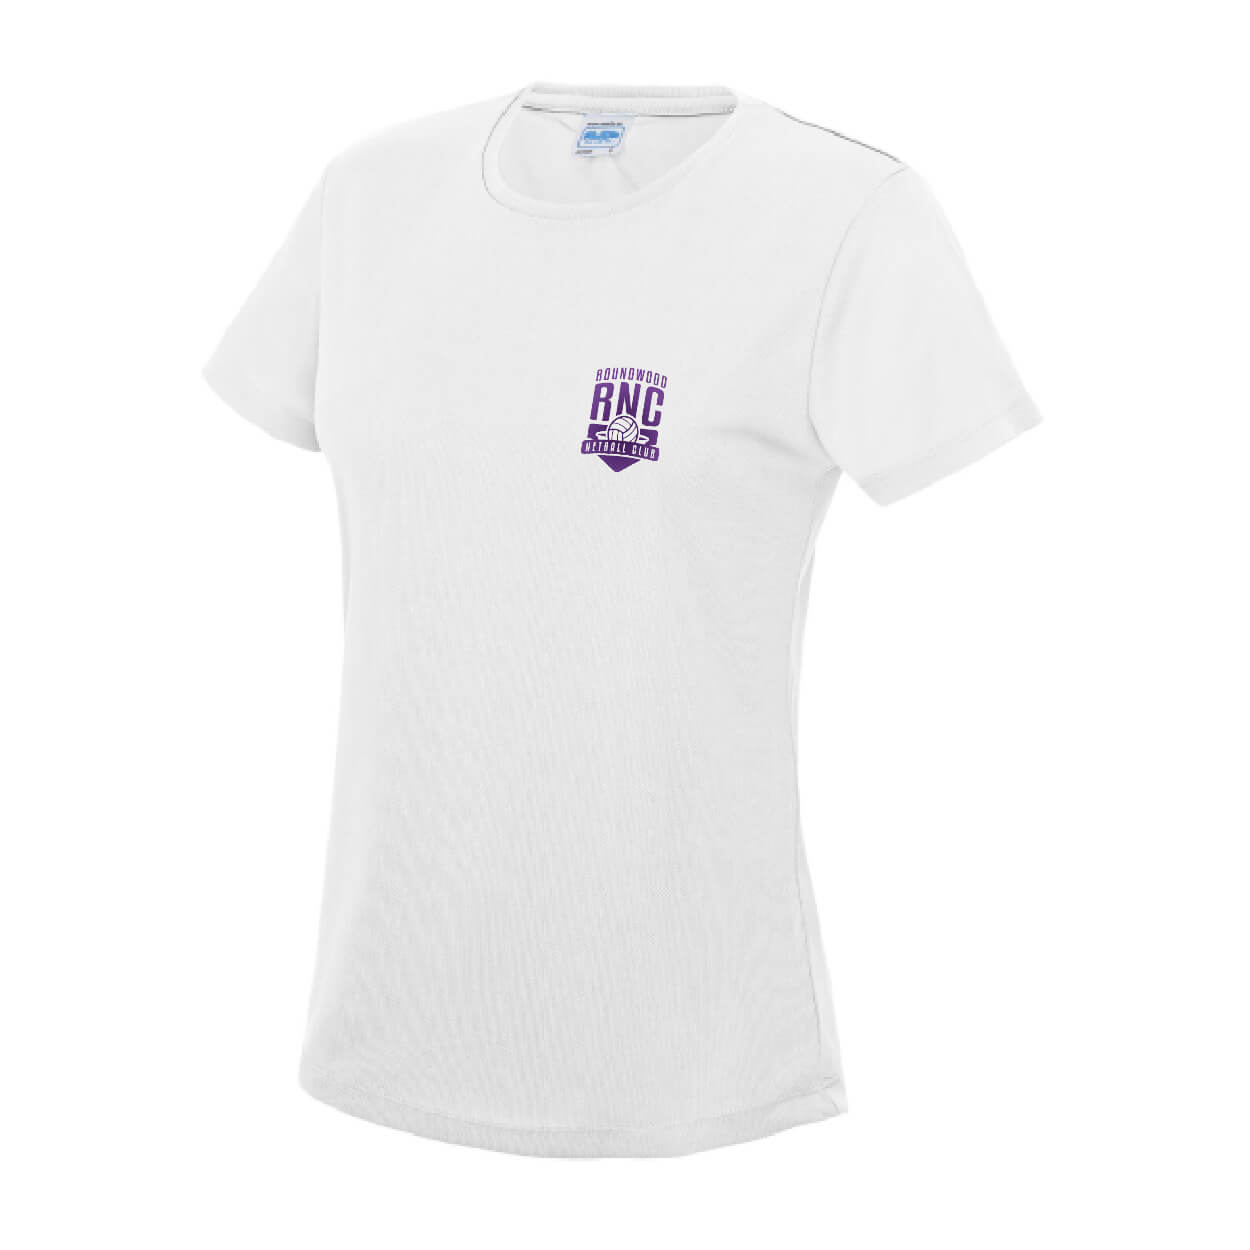 roundwood netball club_Training T-shirt